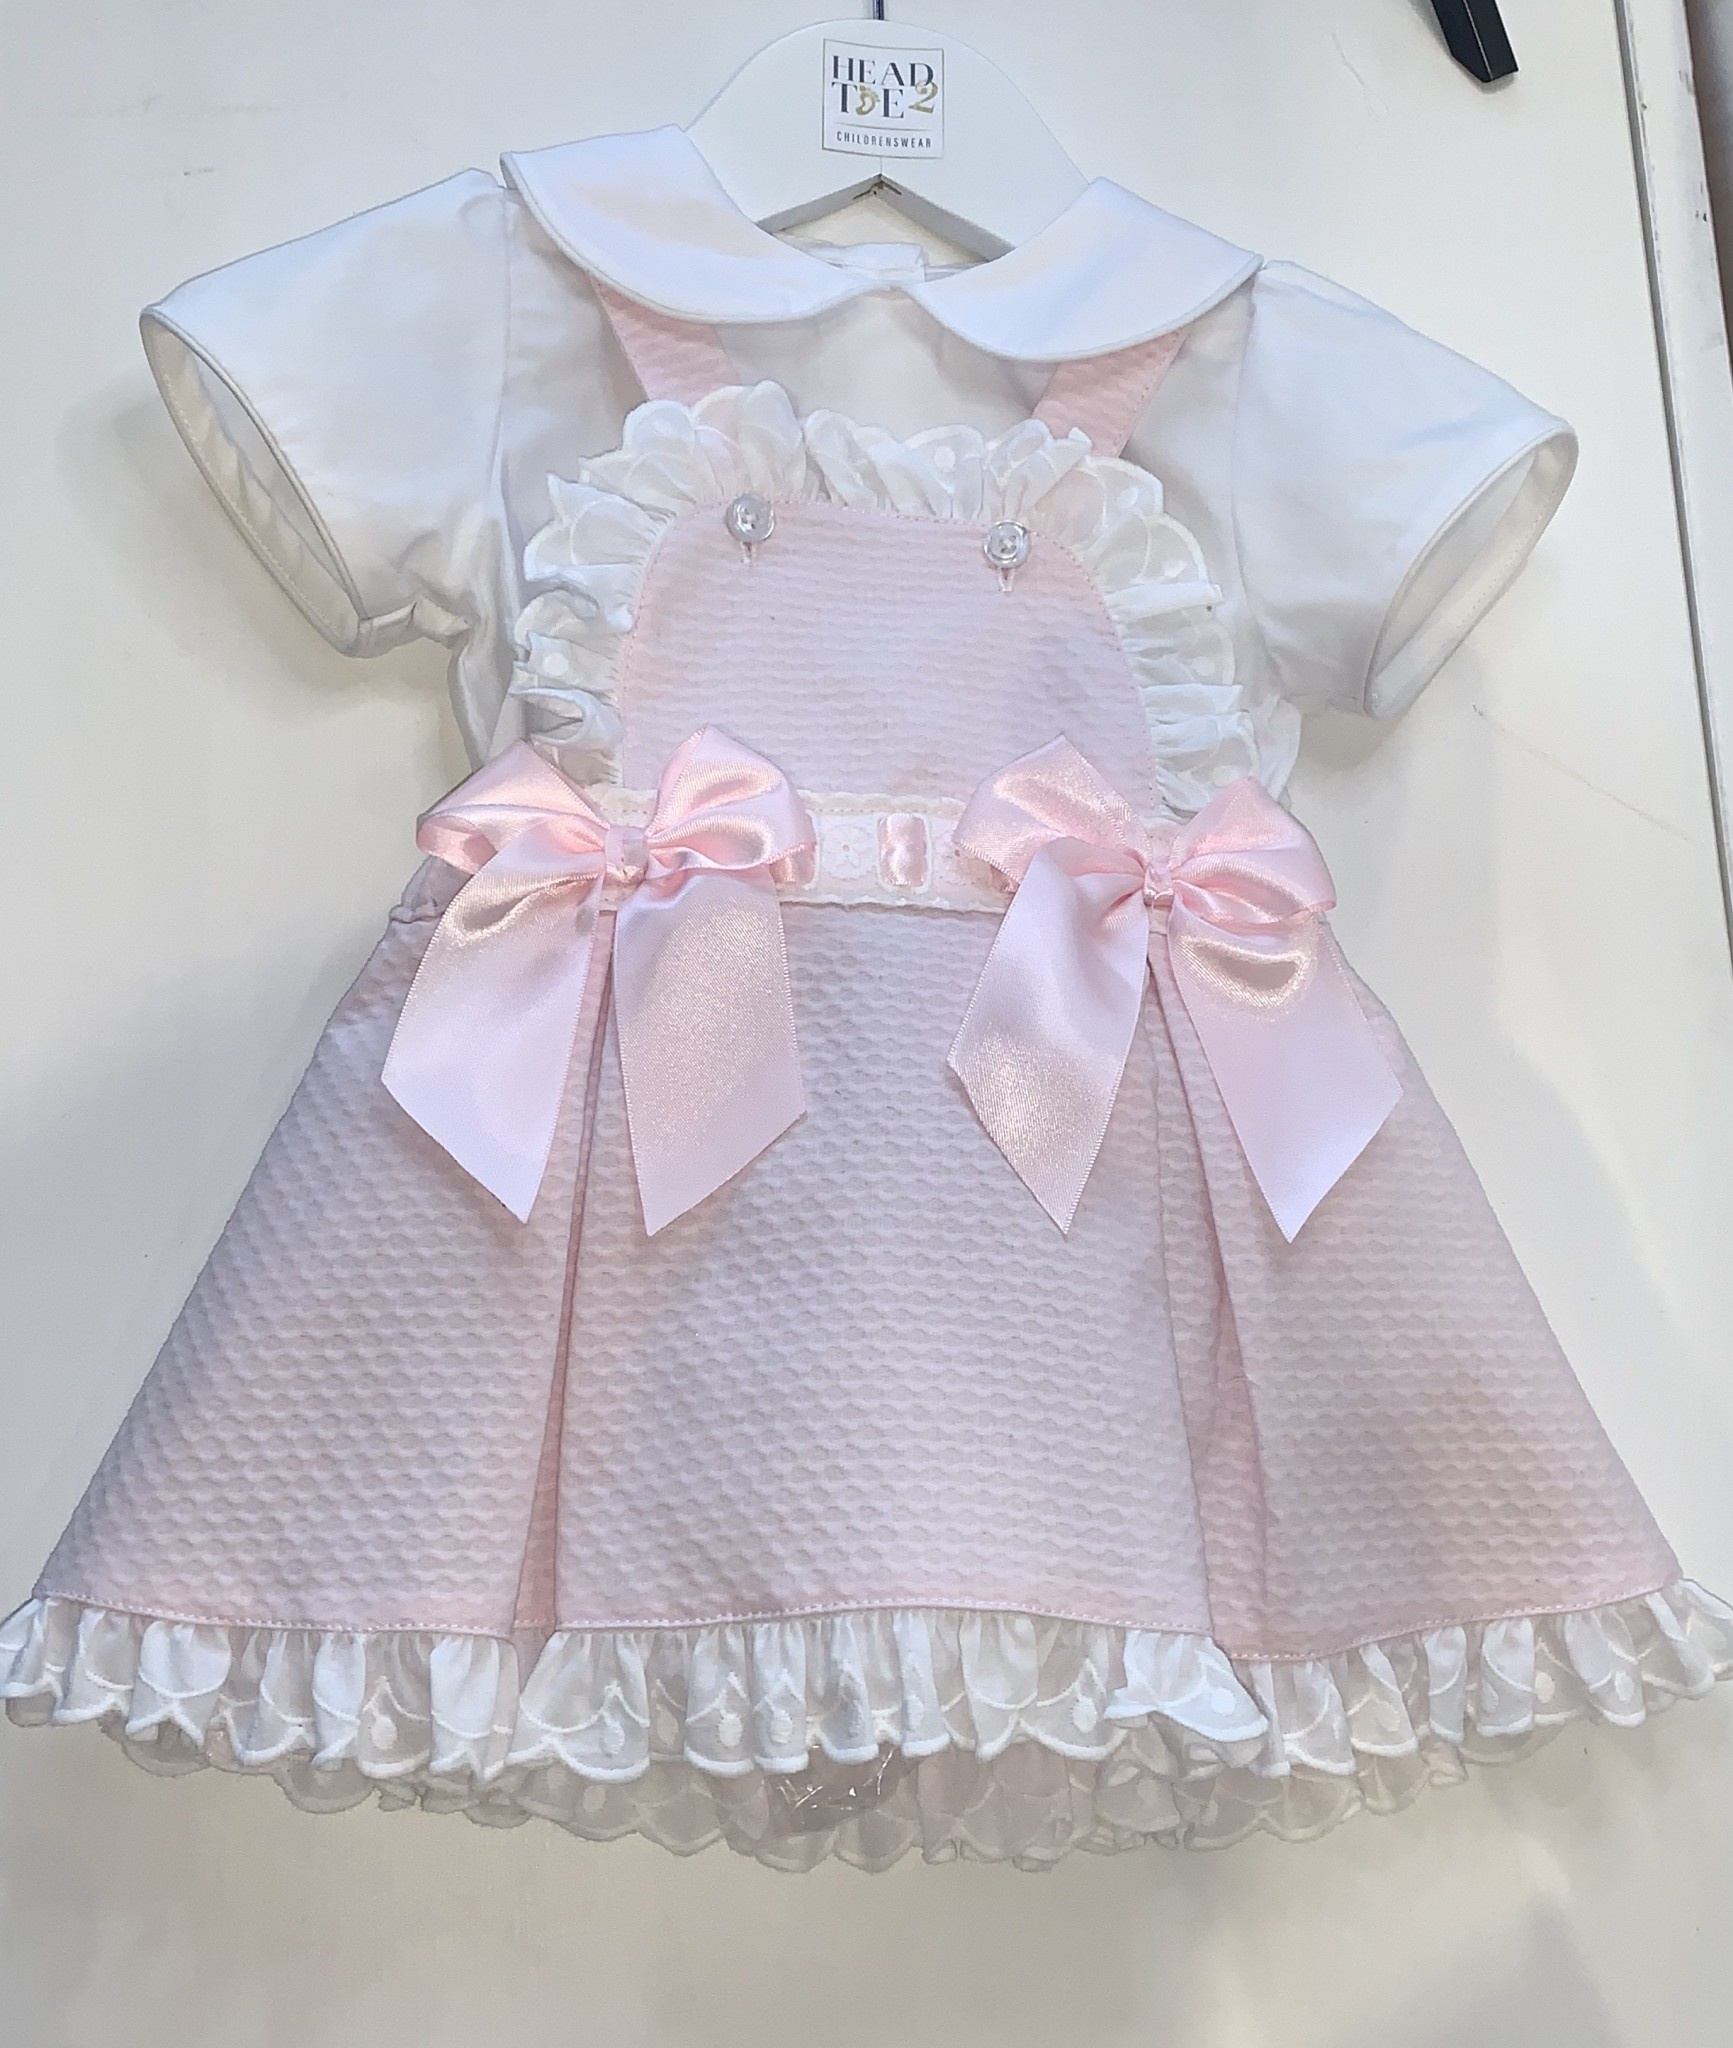 Spanish Girls Pink Dress & shirt with pink satin bows 12/18 Months